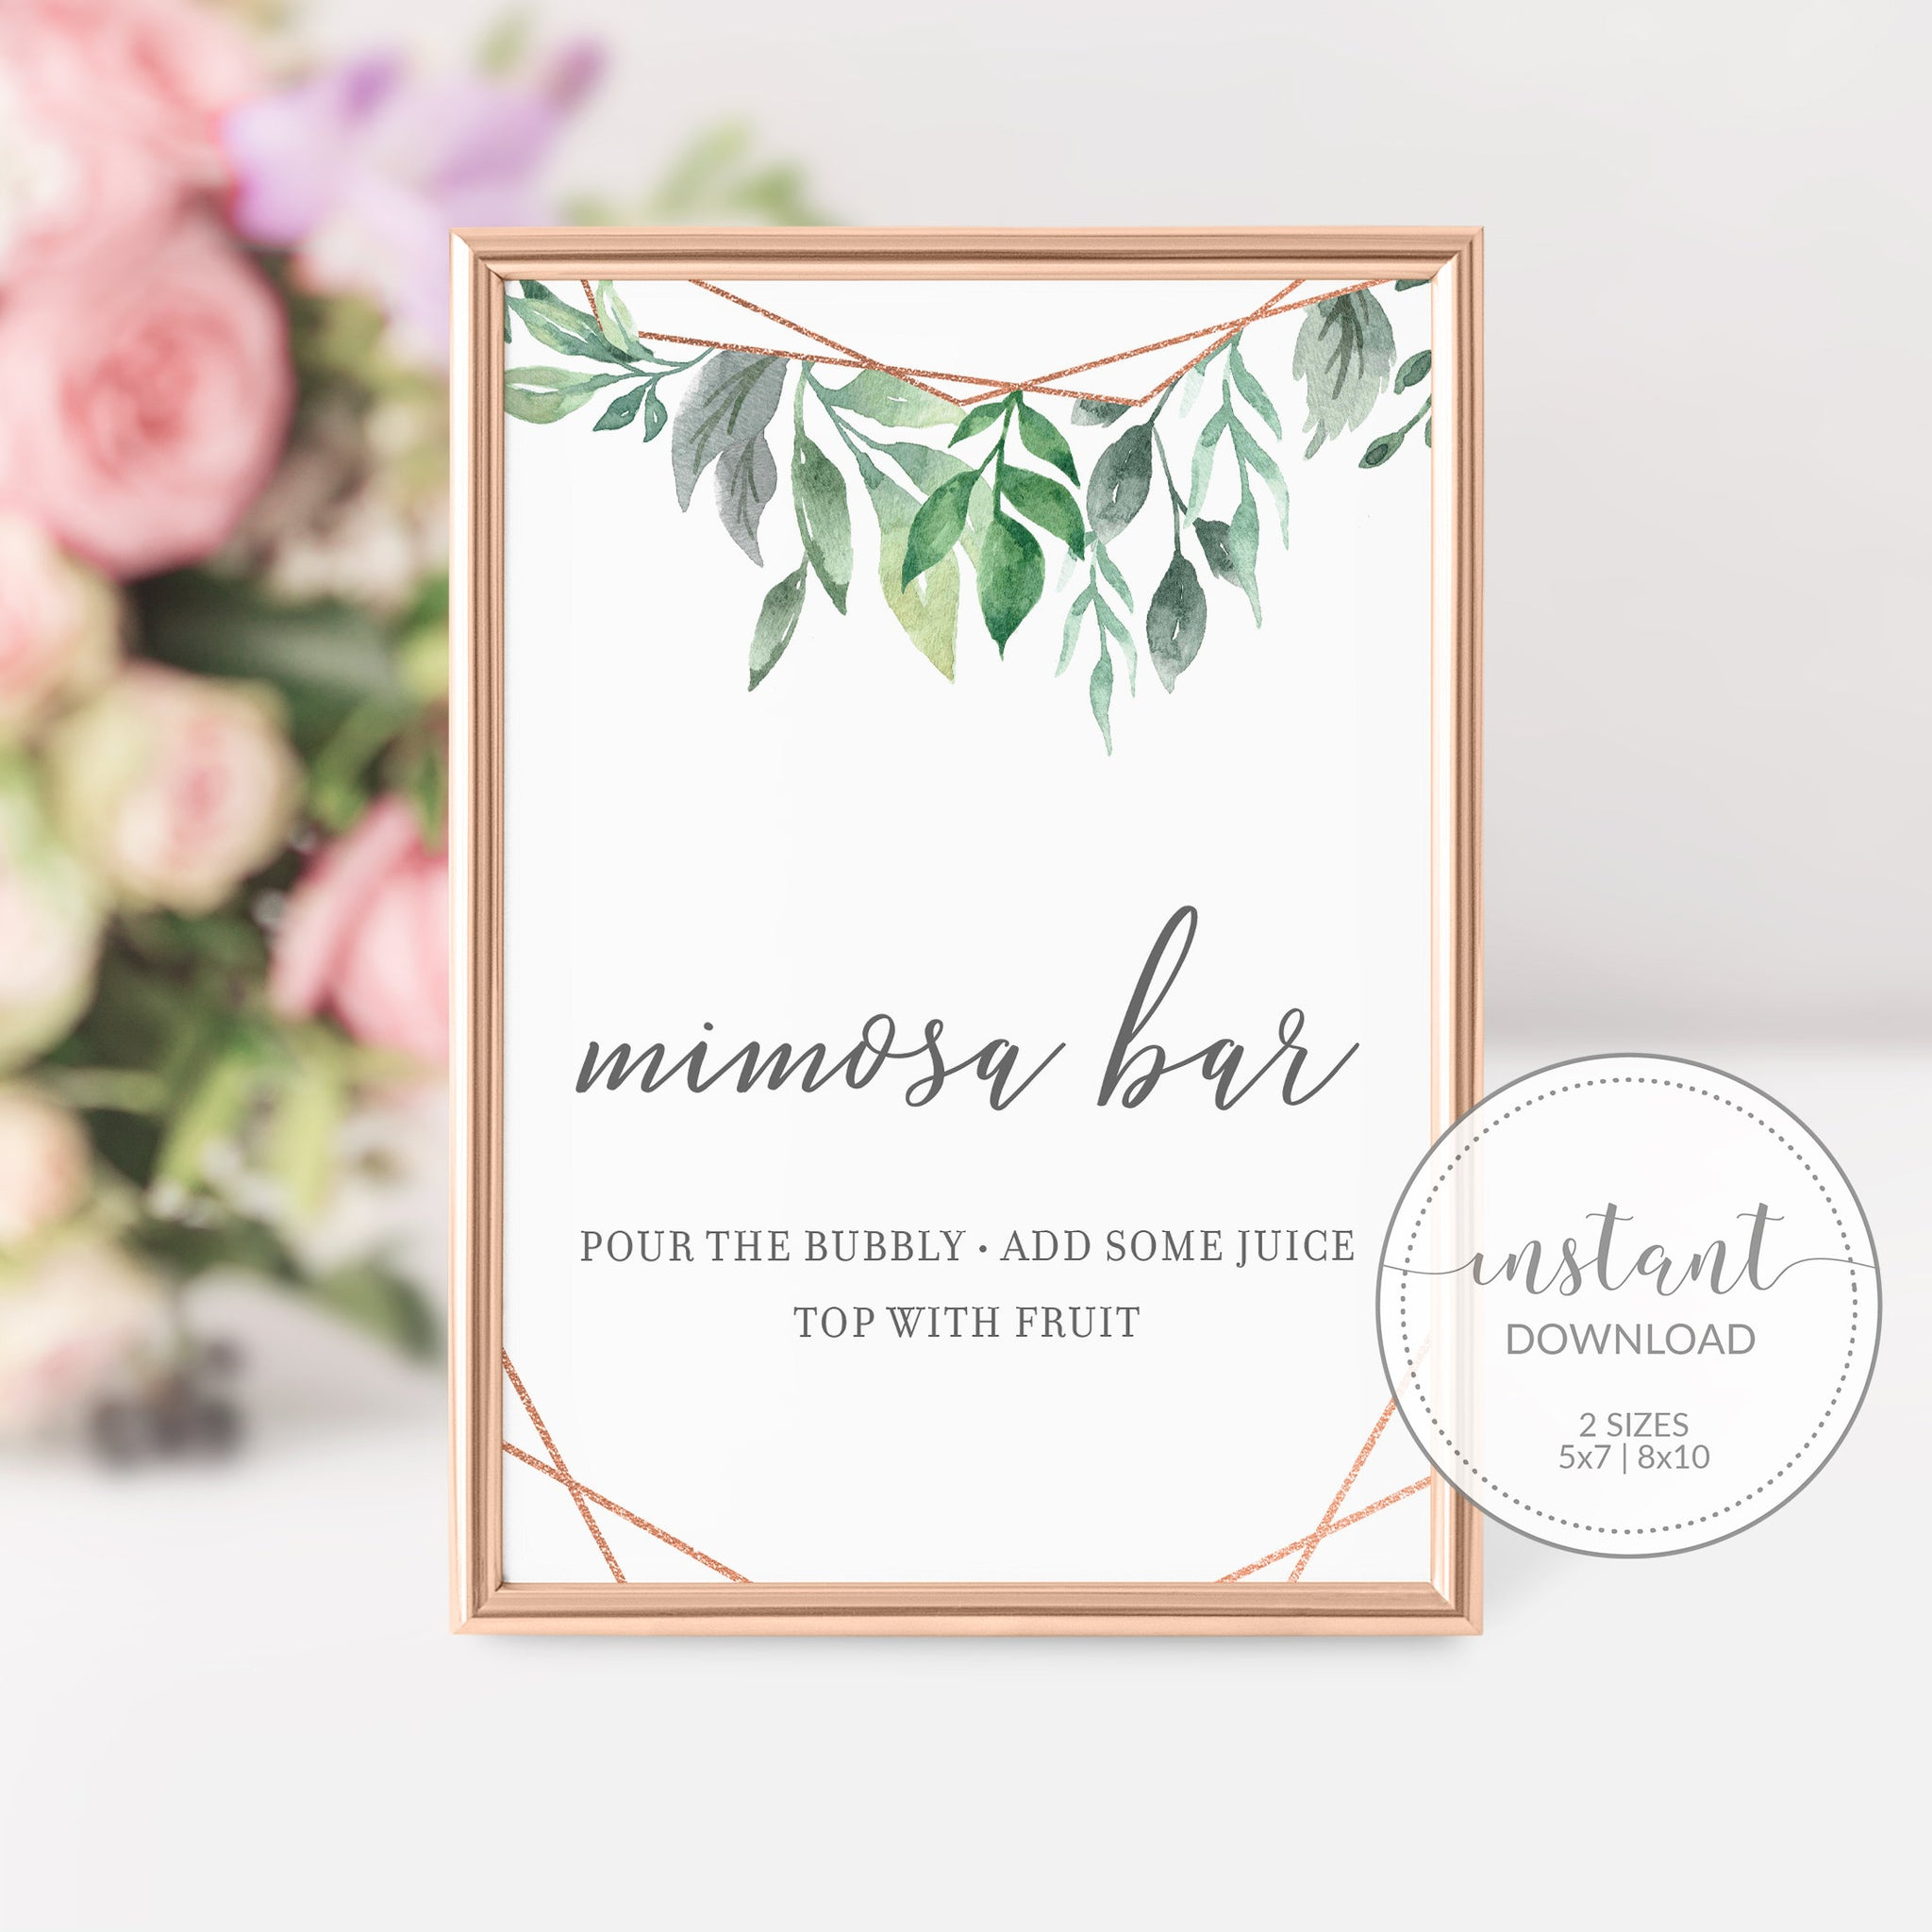 Geometric Rose Gold Greenery Mimosa Bar Printable Sign INSTANT DOWNLOAD, Birthday, Bridal Shower, Baby Shower, Wedding Decorations - GFRG100 - @PlumPolkaDot